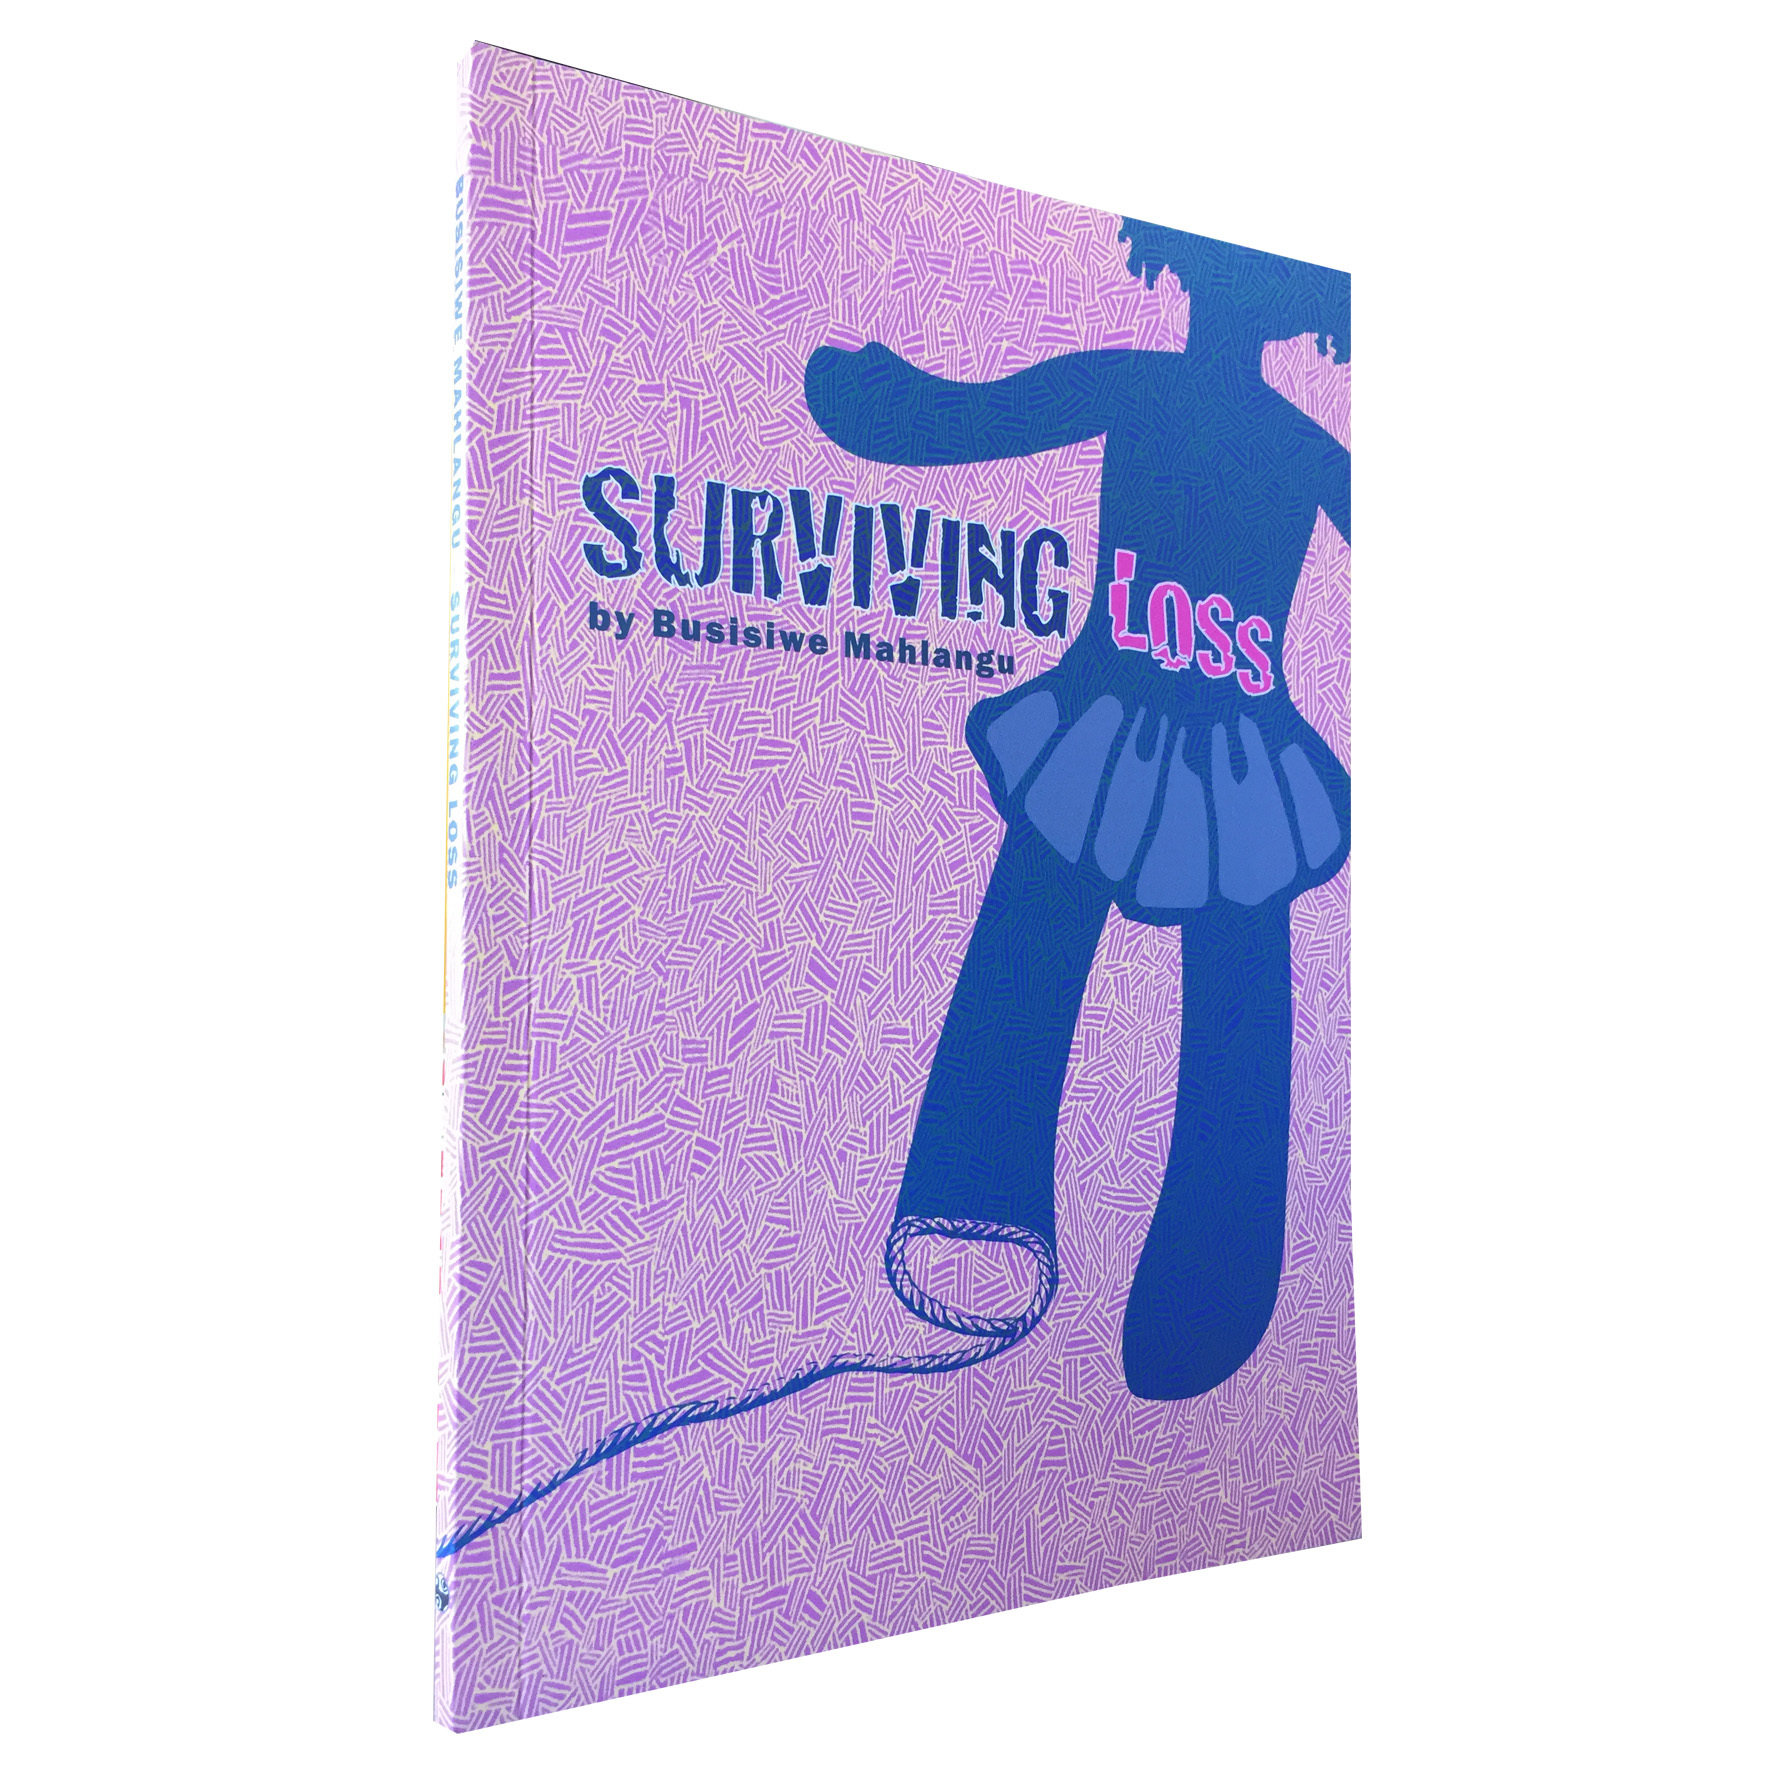 Surviving Loss by Busisiwe Mahlangu (Impepho Press) IP02